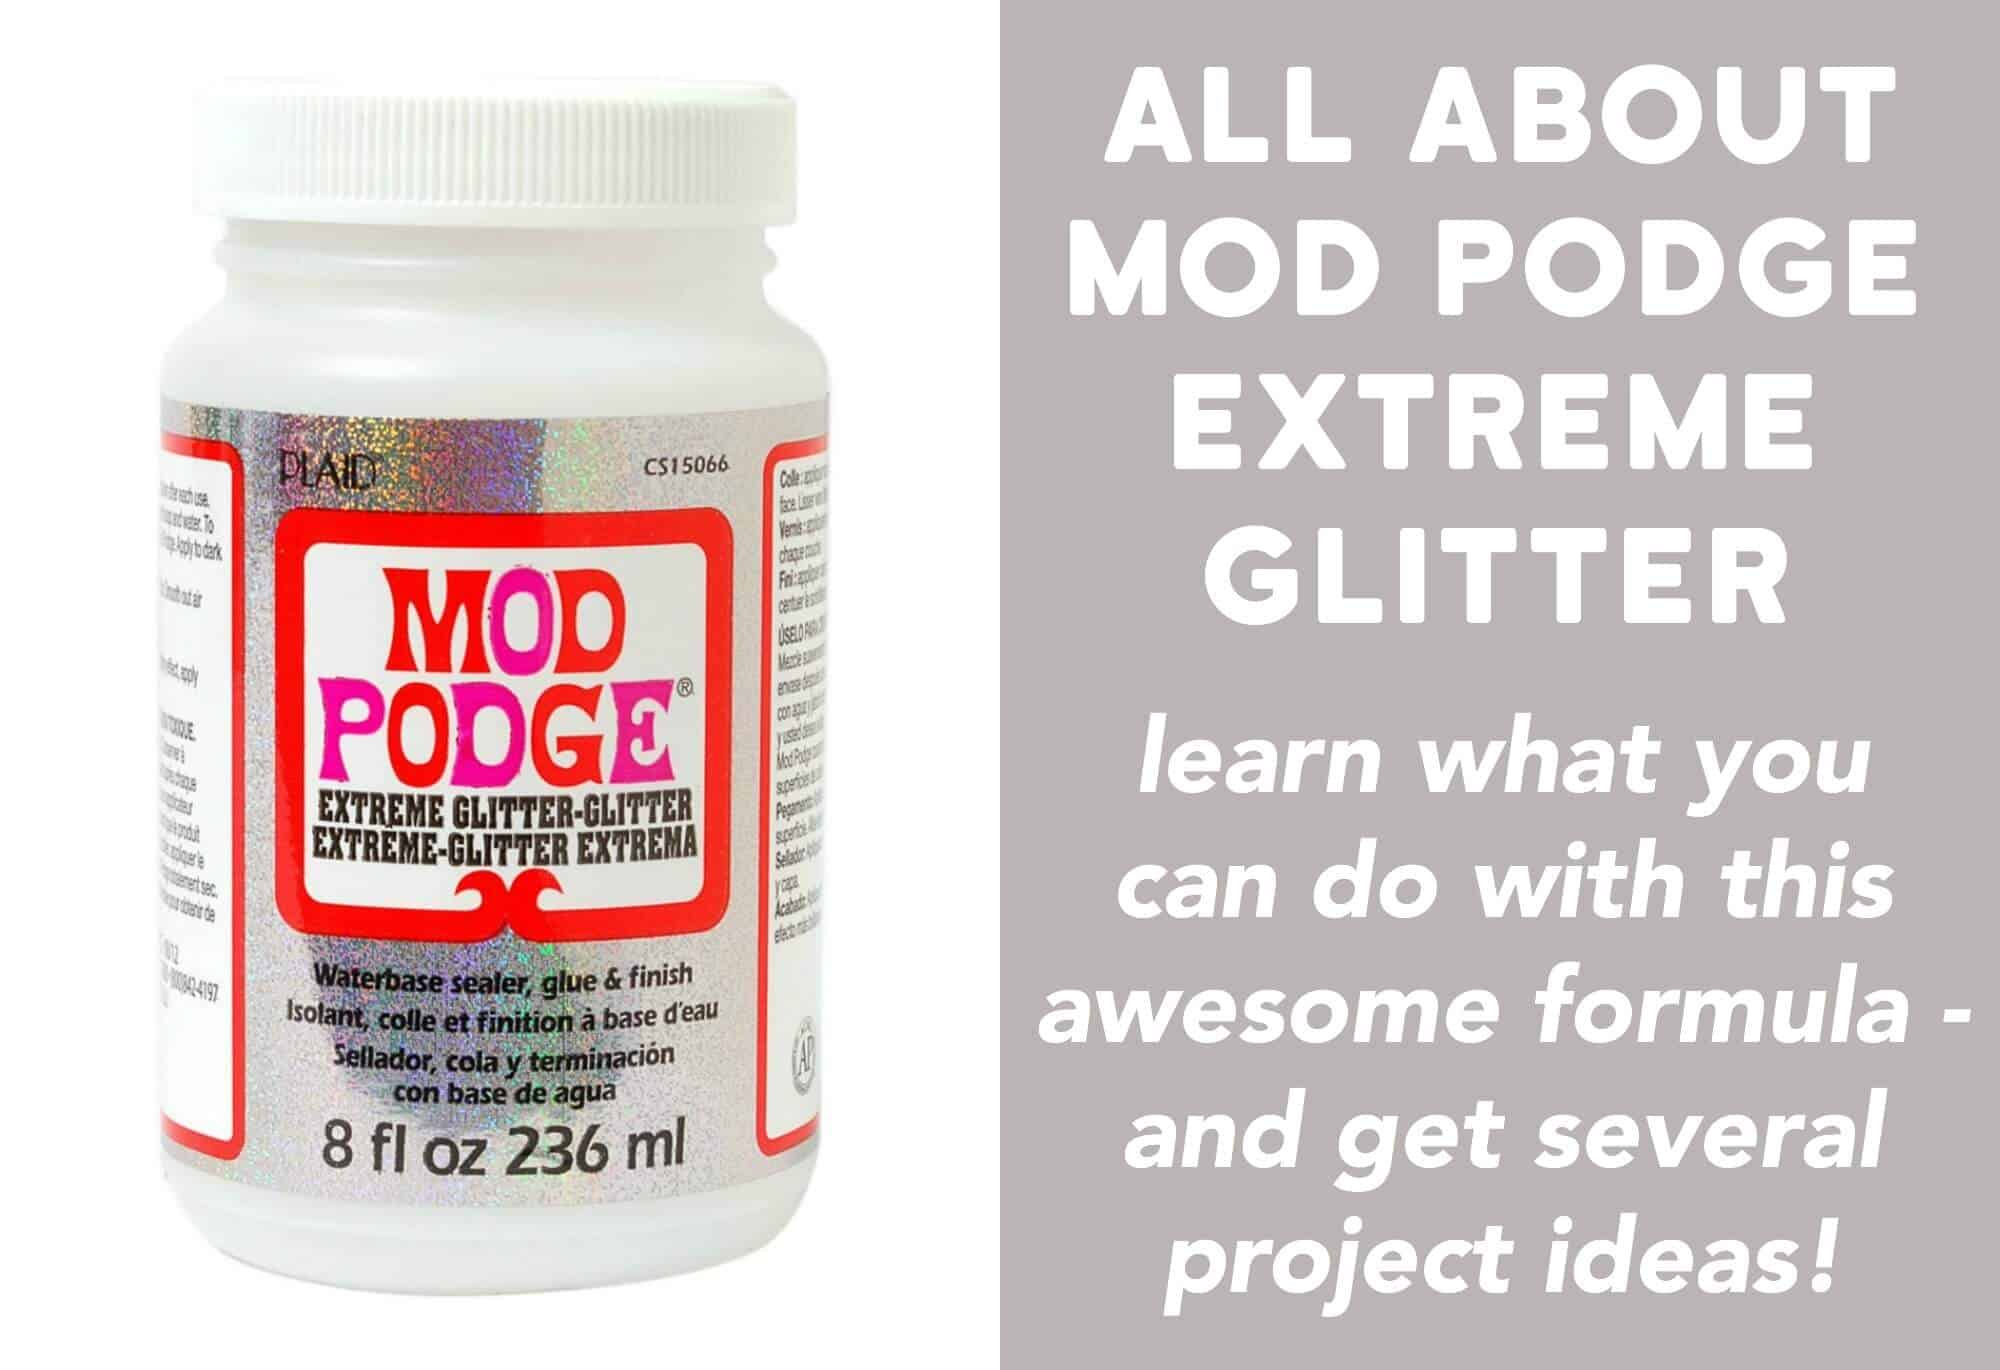 Learn all about the Mod Podge Extreme Glitter formula! Find out what it is, how to use it, and see some unique projects you can make.